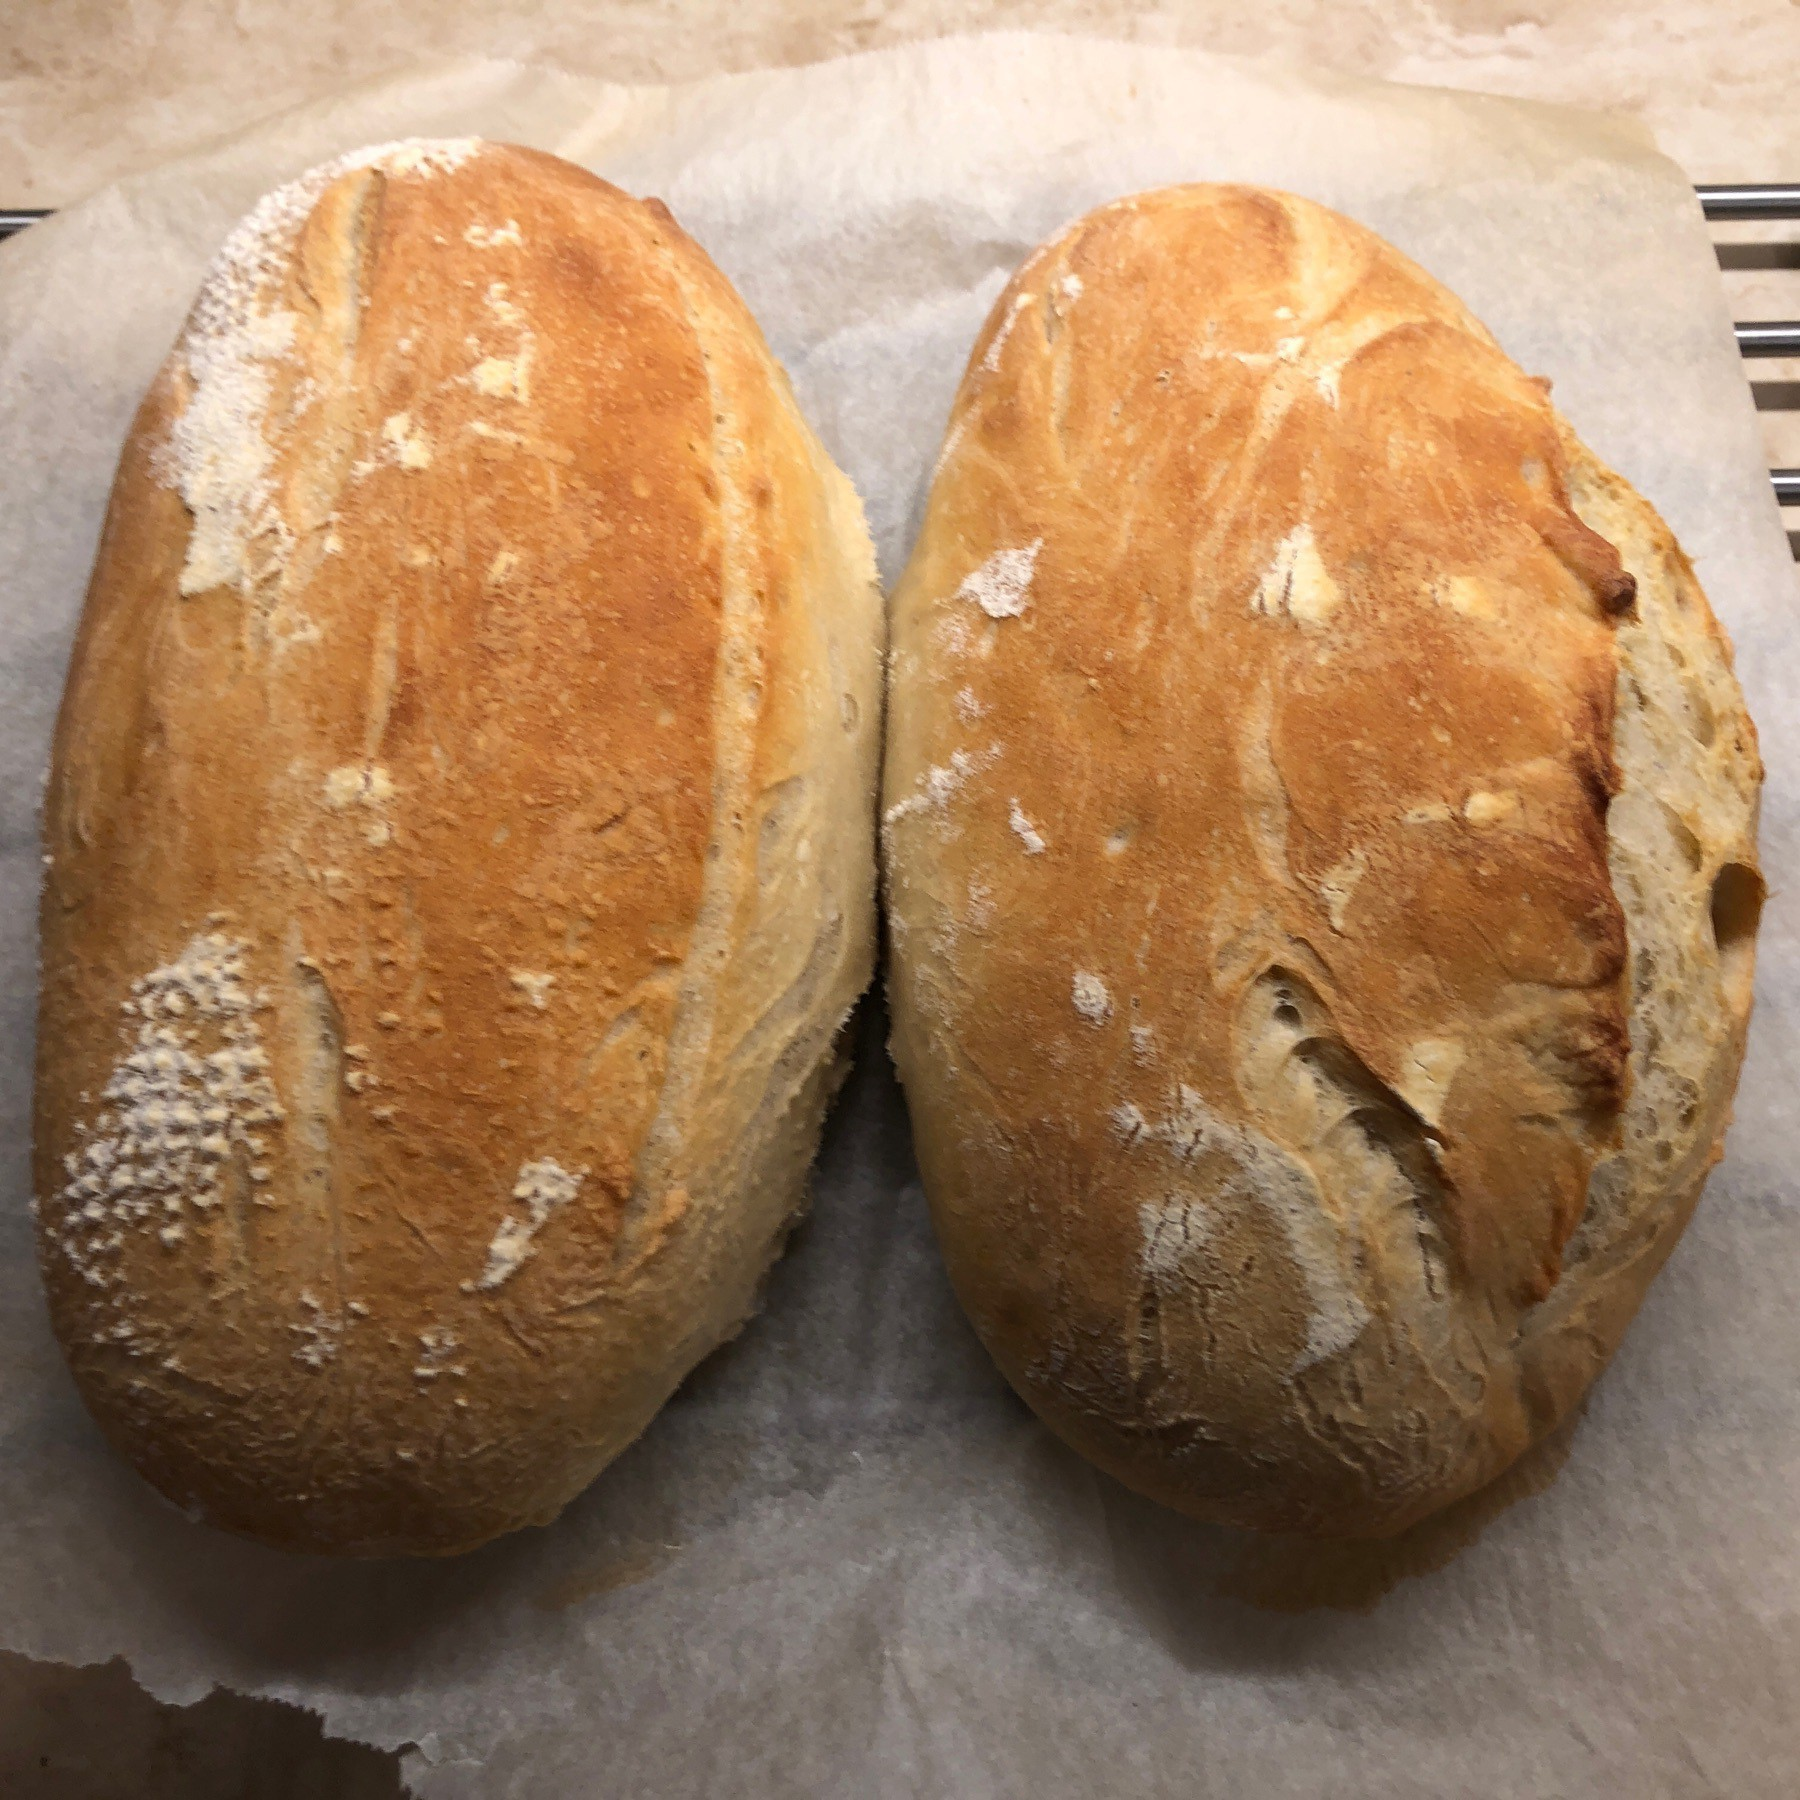 Two loaves of bread cooling on parchment paper.